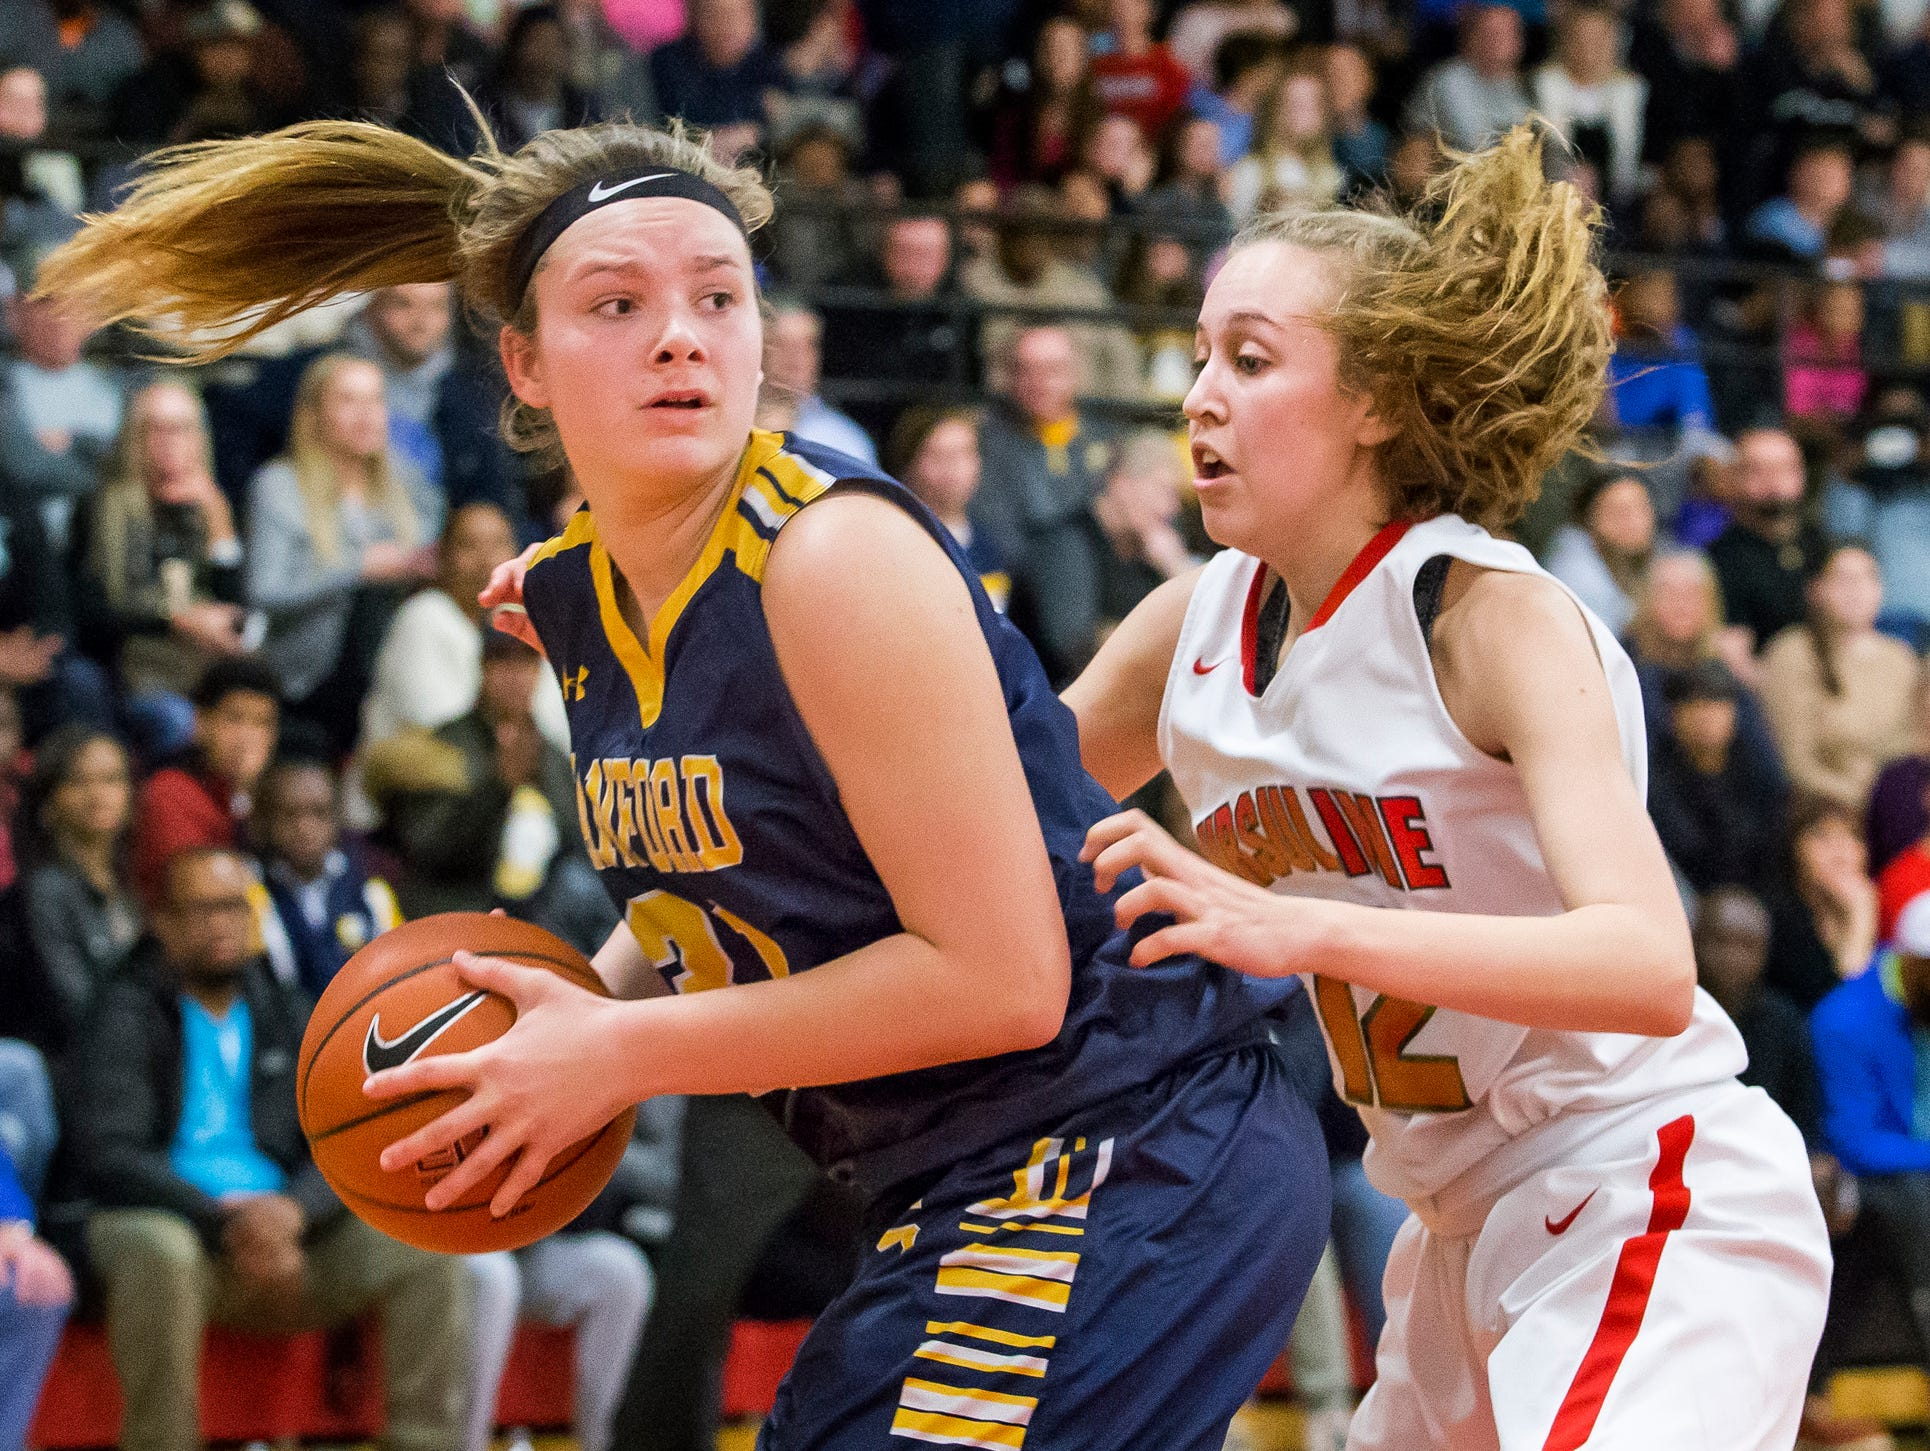 Sanford's Allie Kubek looks for room to pass as she's defended by Ursuline's Olivia Mason (right) in the second half of Ursuline's 50-40 win over Sanford at Ursuline Academy on Thursday night.